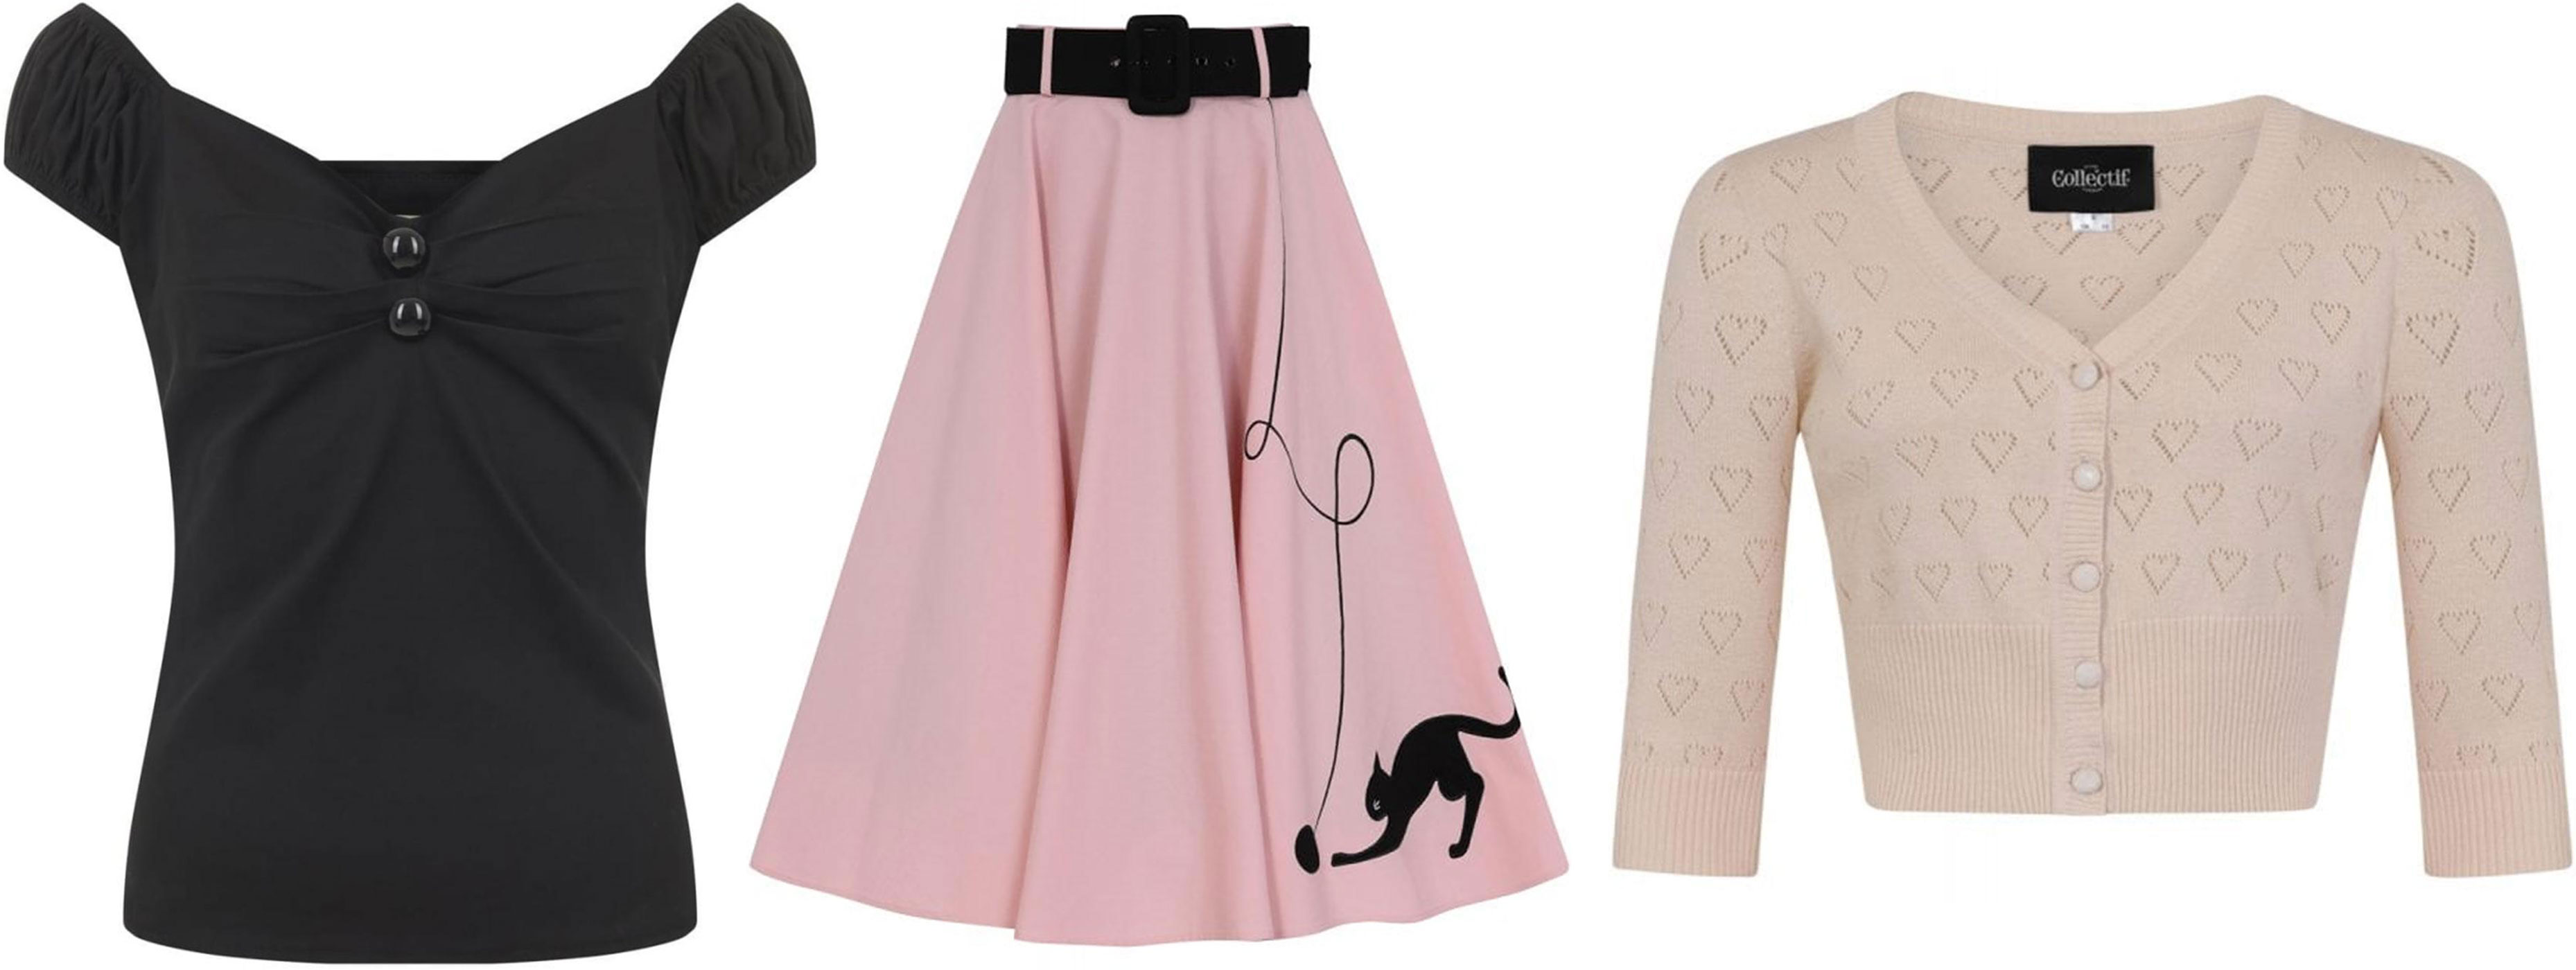 The Collectif Kitty Cat swing skirt with Evie cardigan and Dolores top